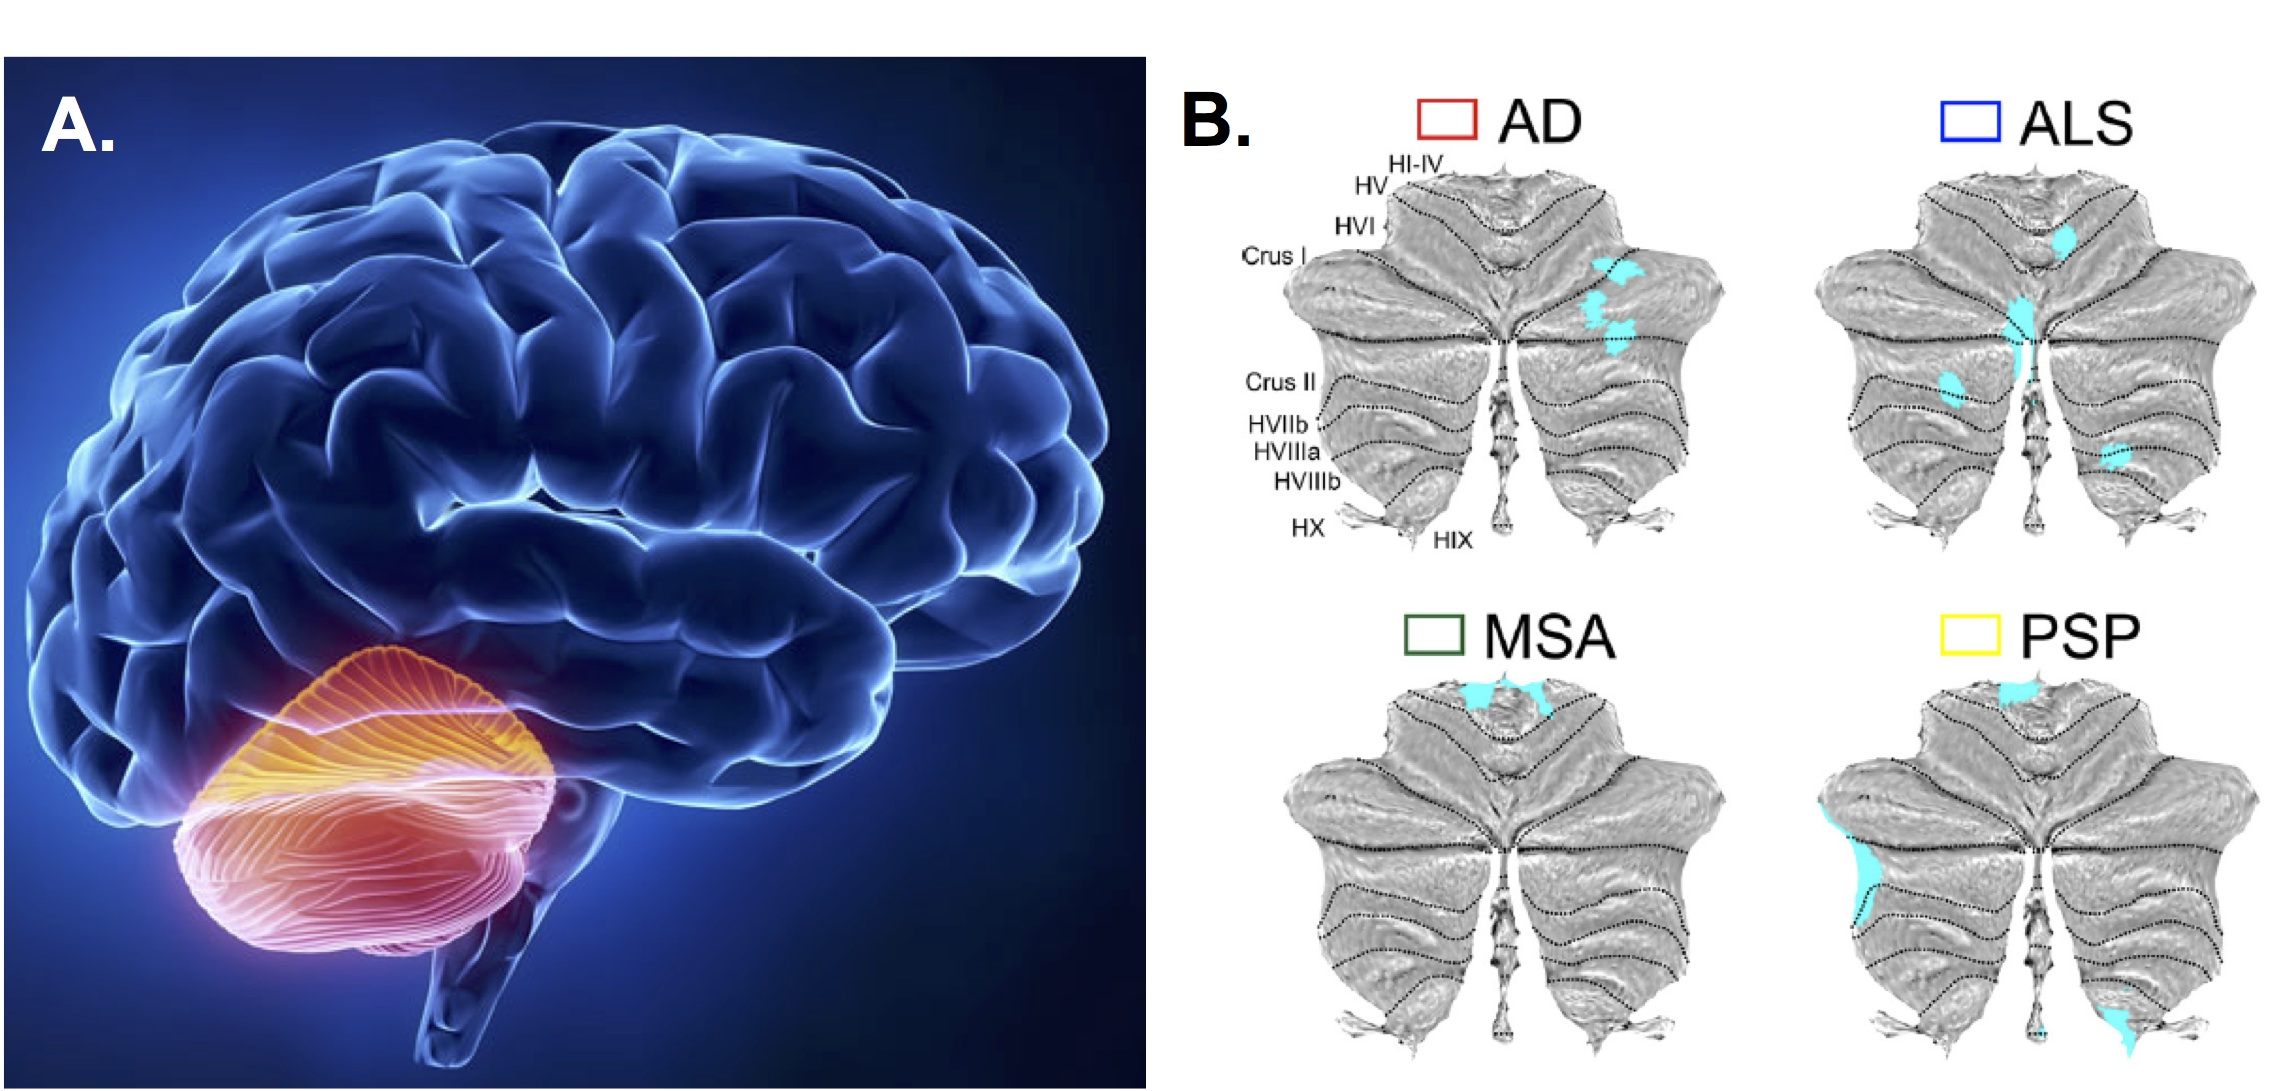 Ad Brain Diagram Content Resource Of Wiring Easy The Cerebellum In Neurodegeneration More Than Just Balance Control Rh Blogs Bmj Com Labeled With Functions